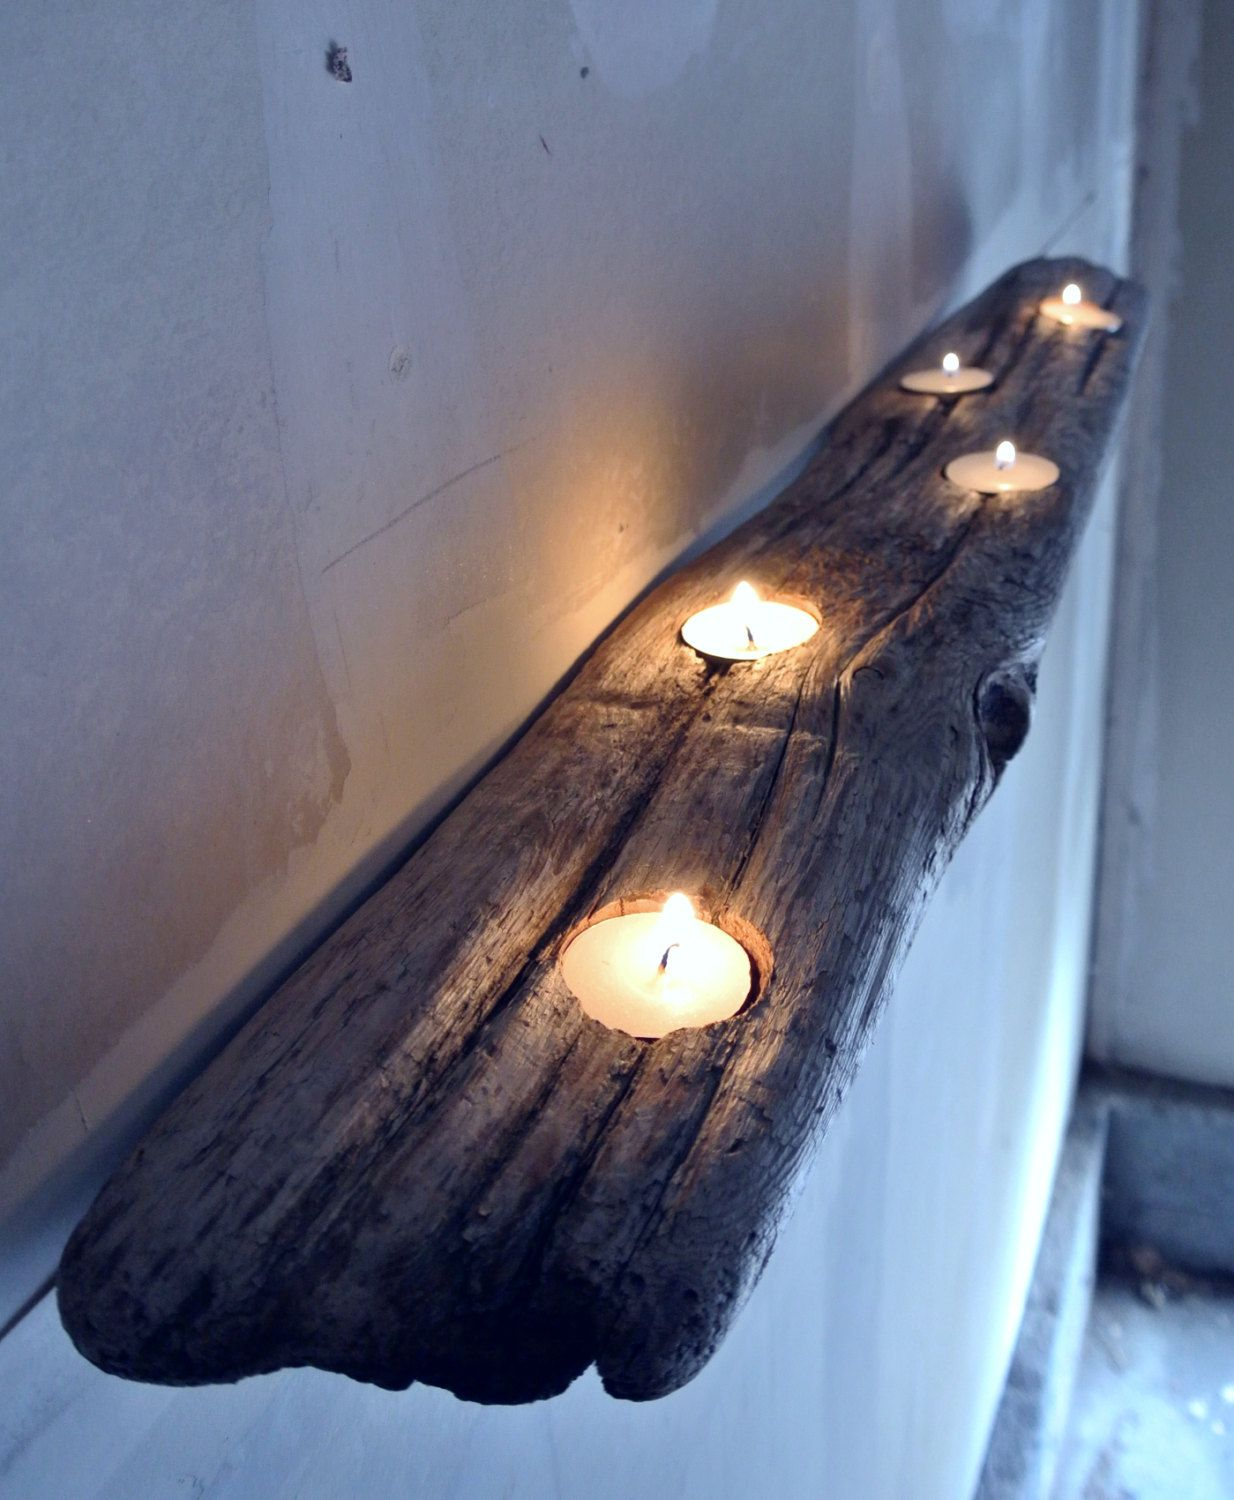 15 OFF Reclaimed Drift Wood Candle Holder Wall by ThEeRabbitHole, $45.00